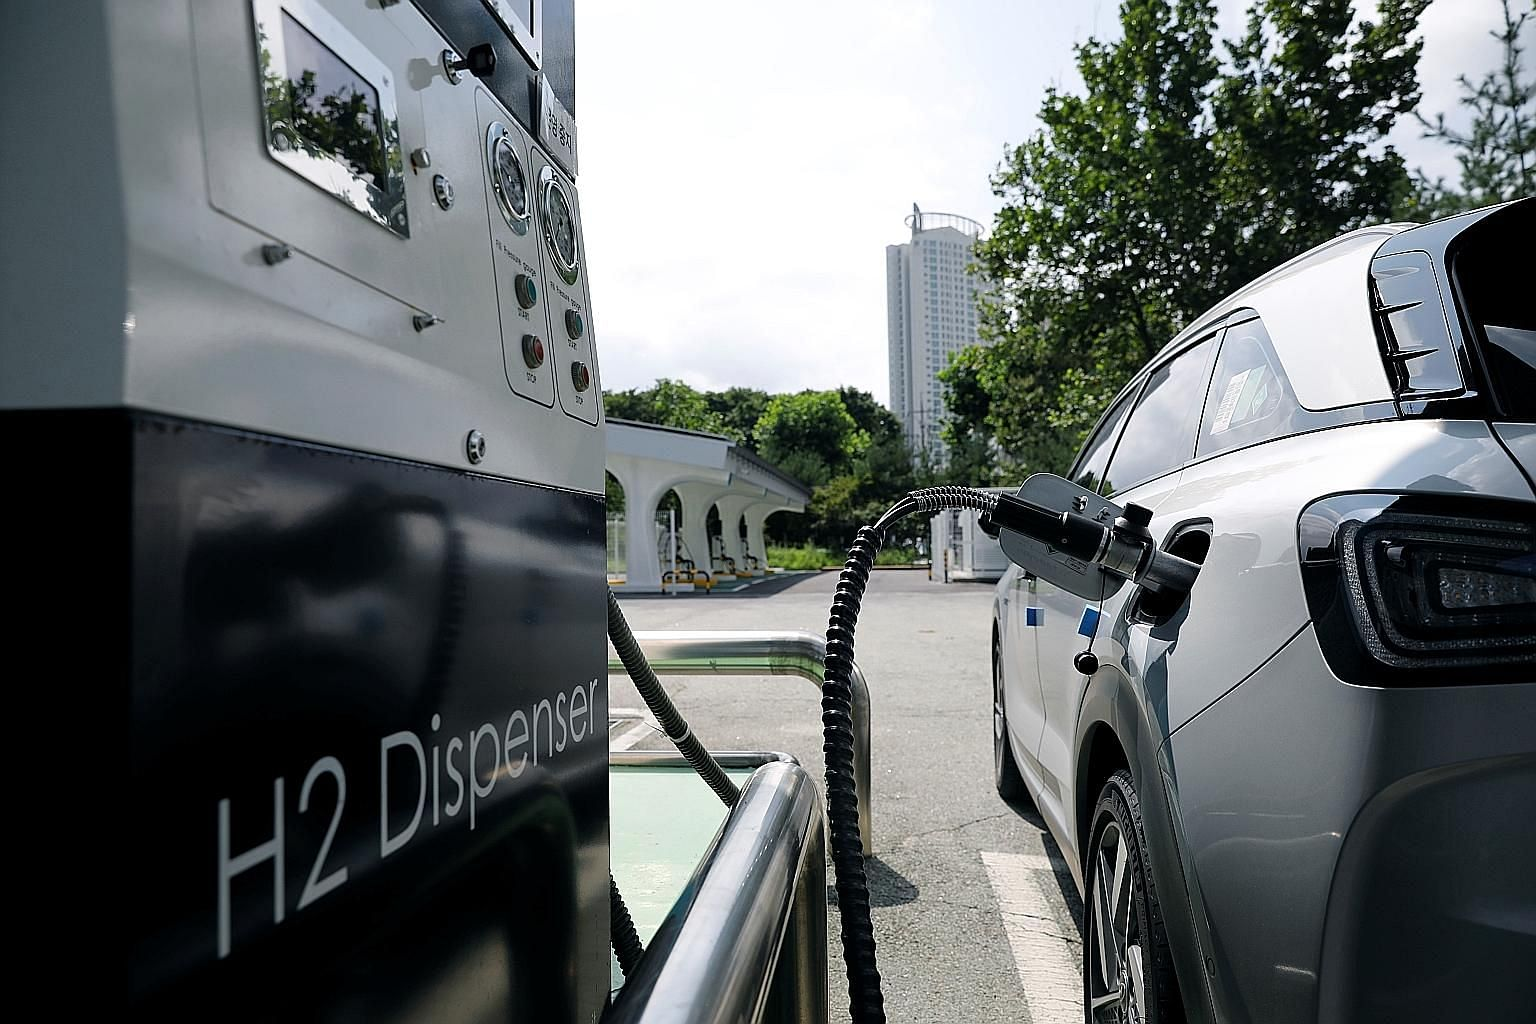 A Nexo hydrogen car from Hyundai being refuelled in Seoul. South Korea's President Moon Jae-in said the country's firms will invest $69 billion over the next decade in the future of transportation.